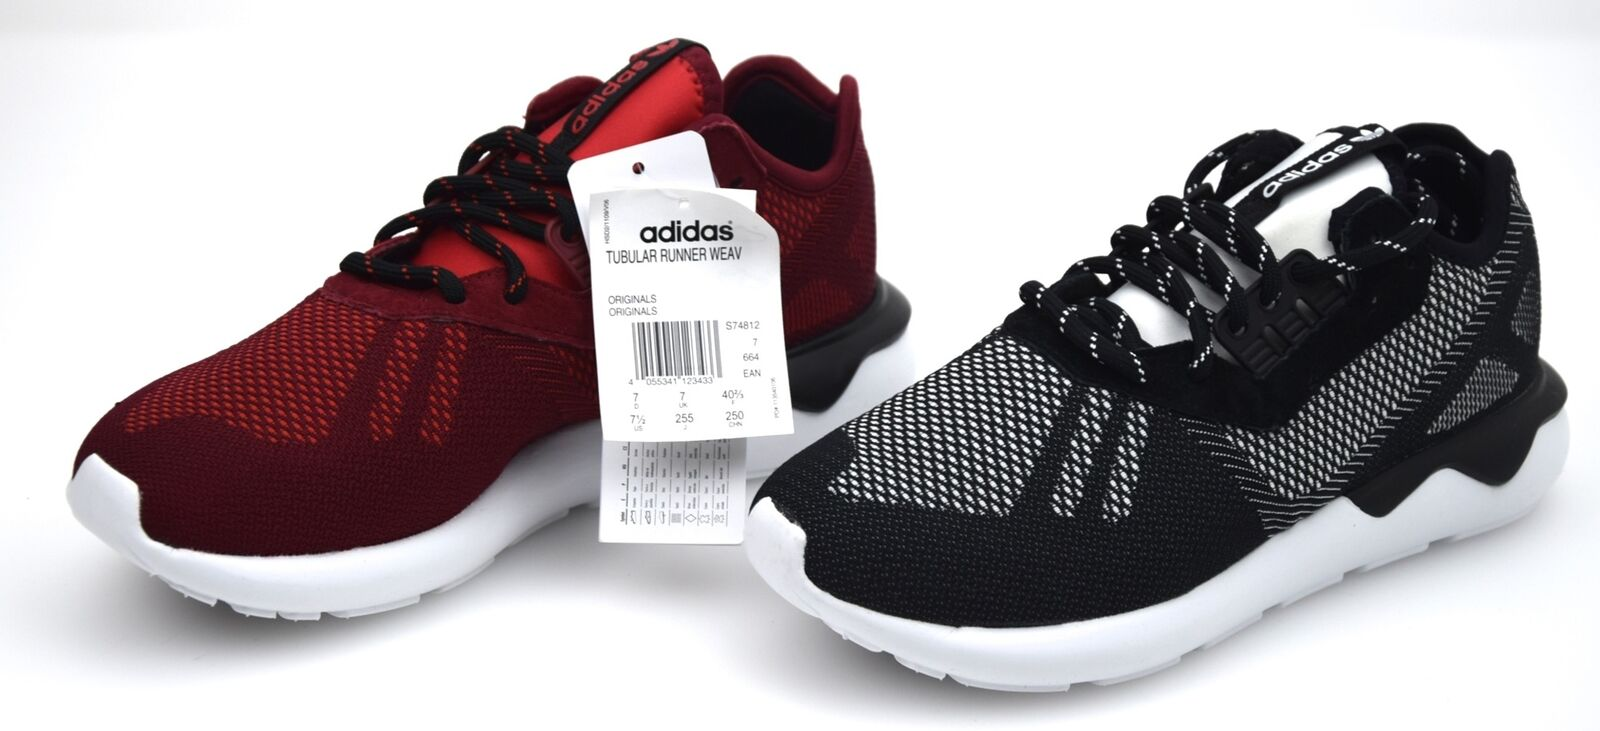 ADIDAS Homme SPORTS SNEAKER Chaussures CODE TUBULAR RUNNER WEAVE S74812 - S74813